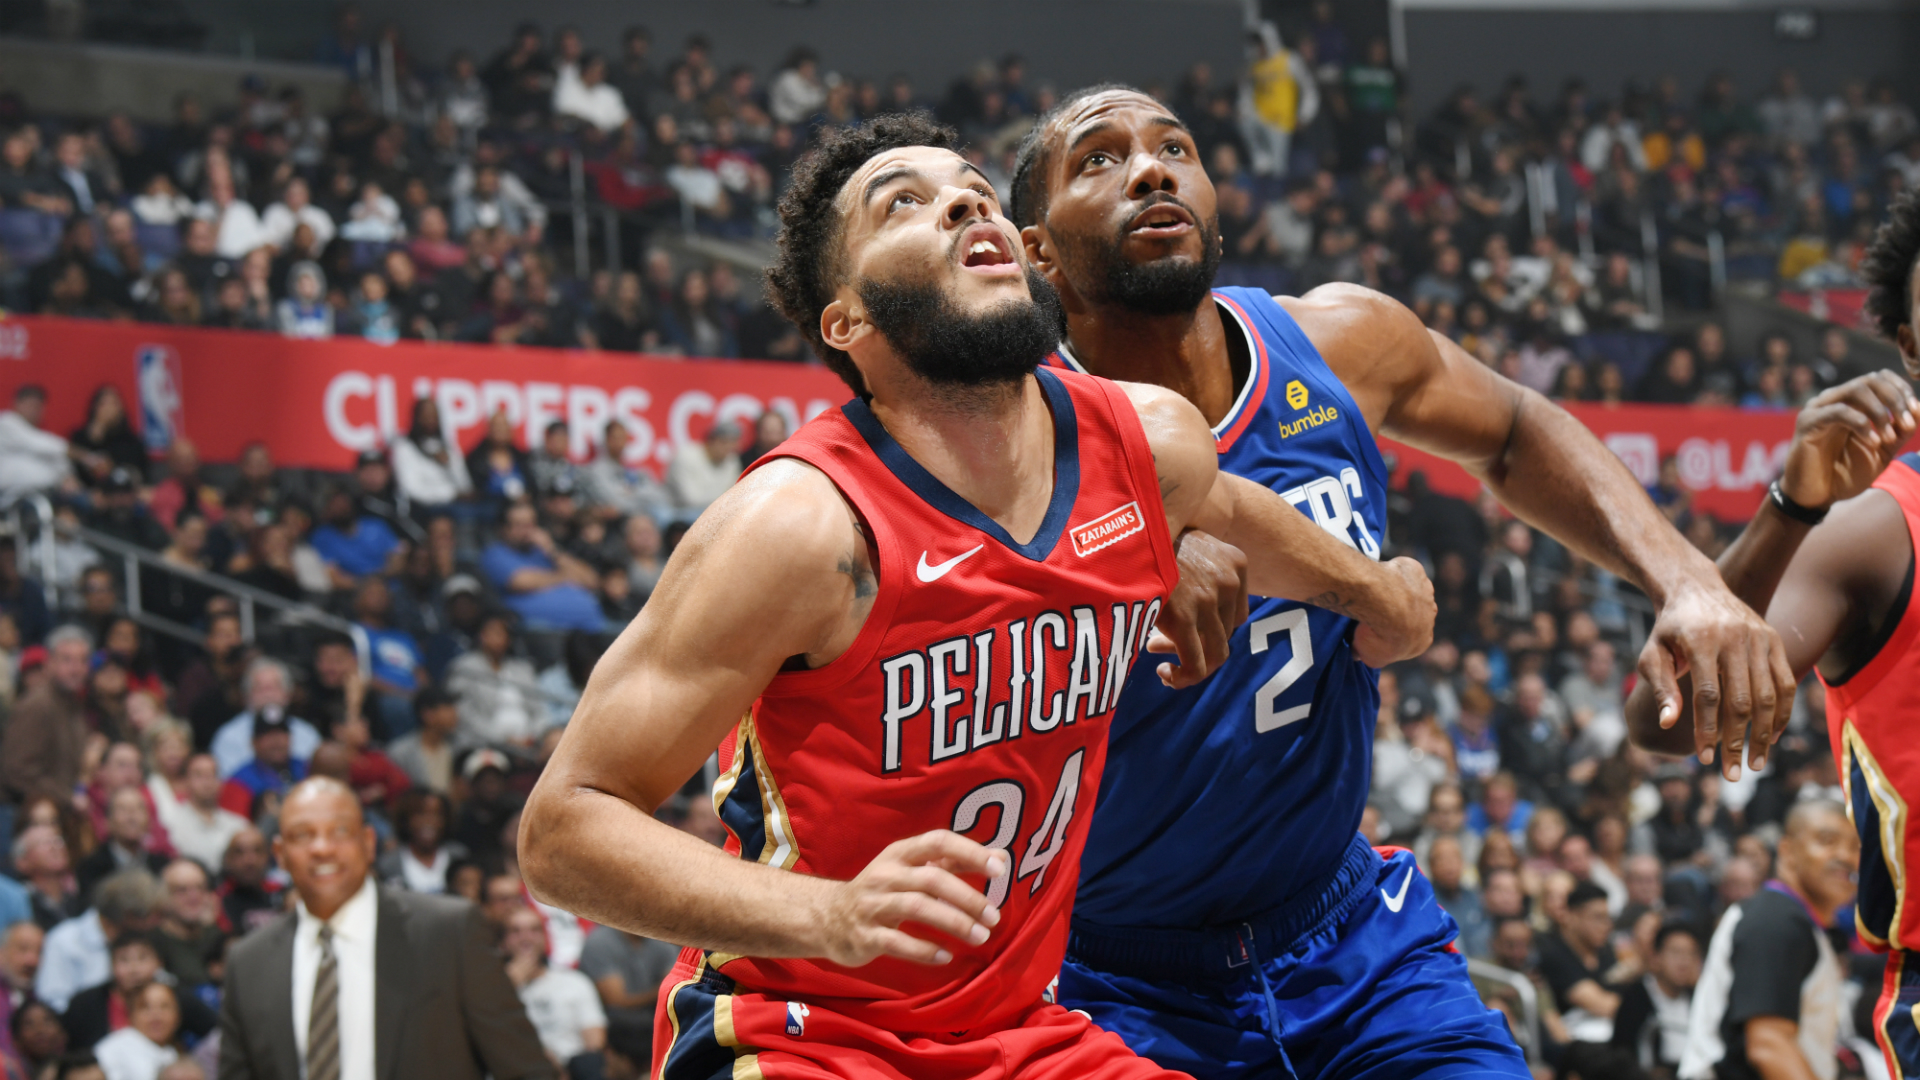 Pelicans @ Clippers